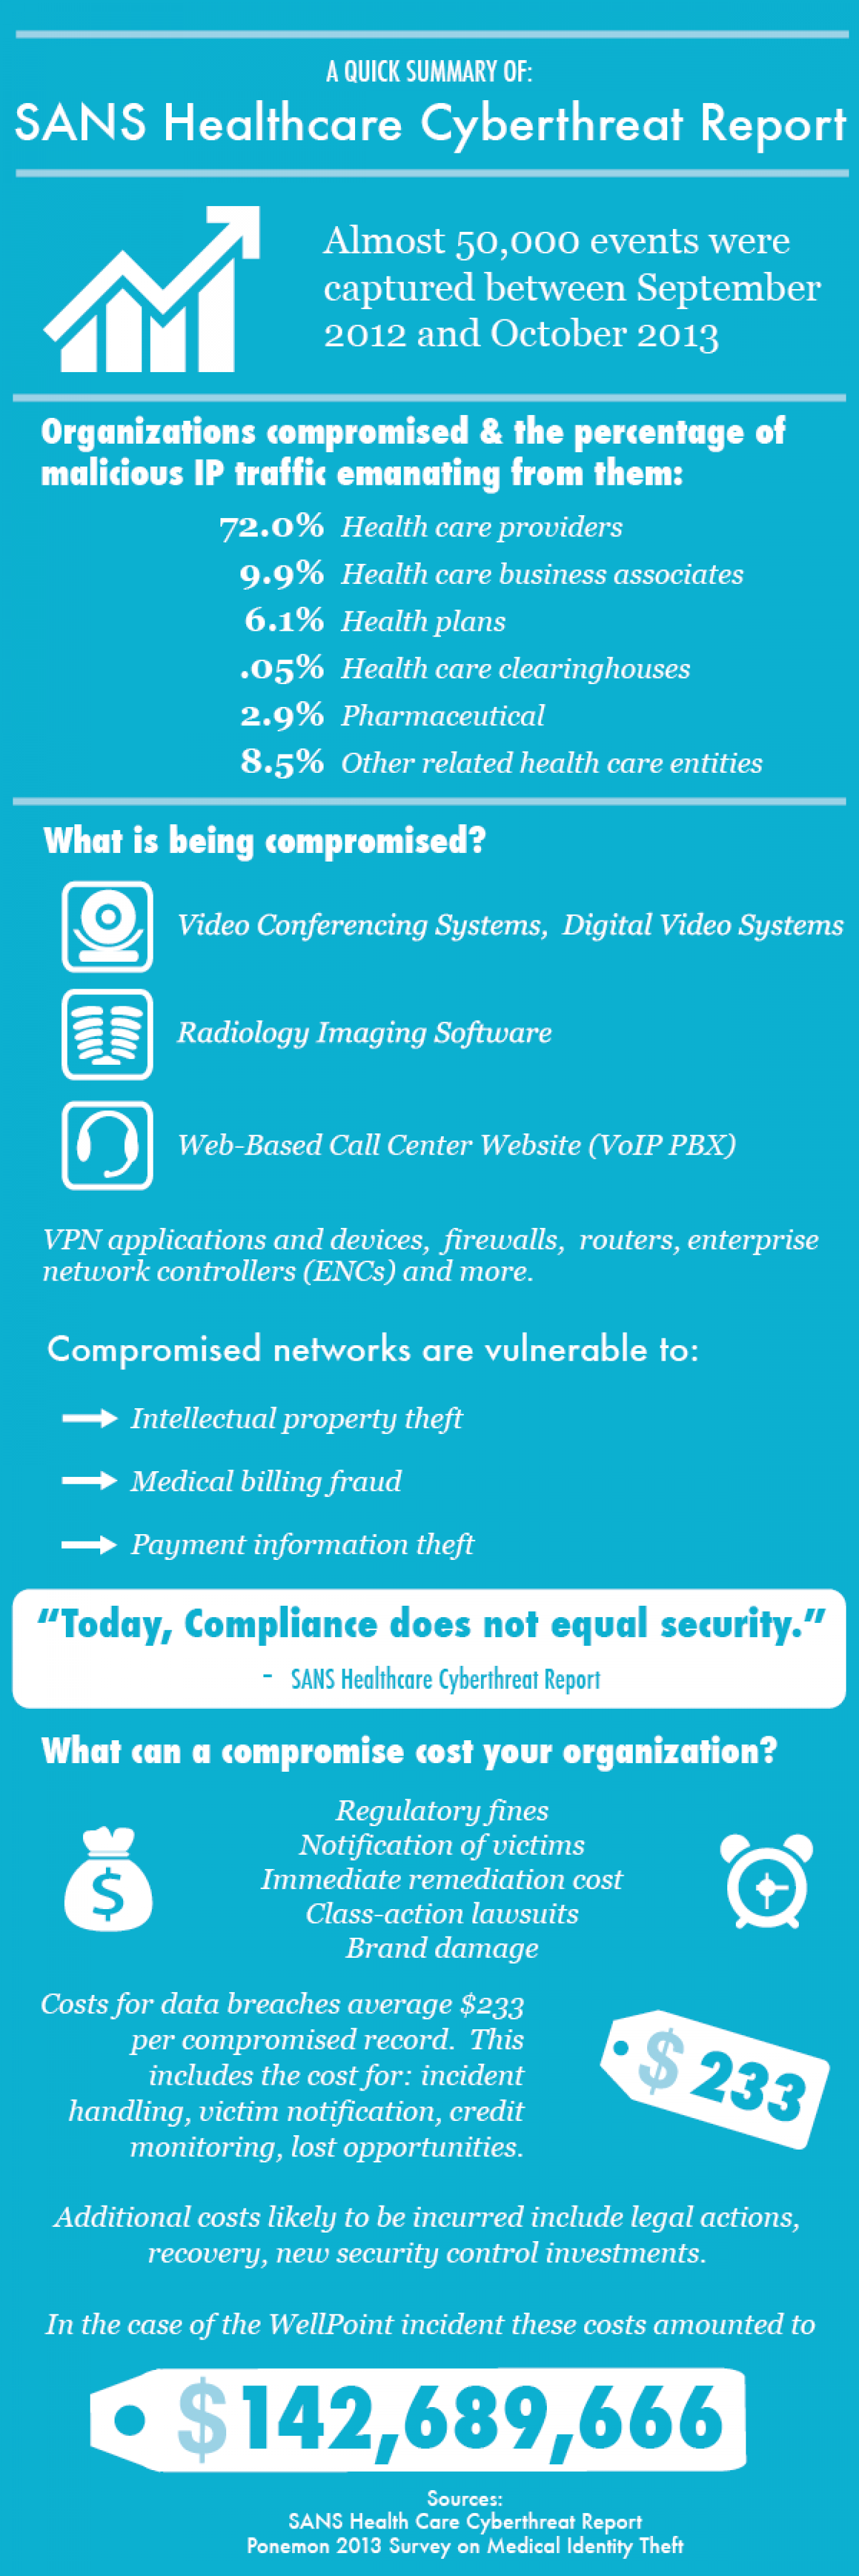 A Quick Review of SANS Healthcare Cyberthreat Report Infographic